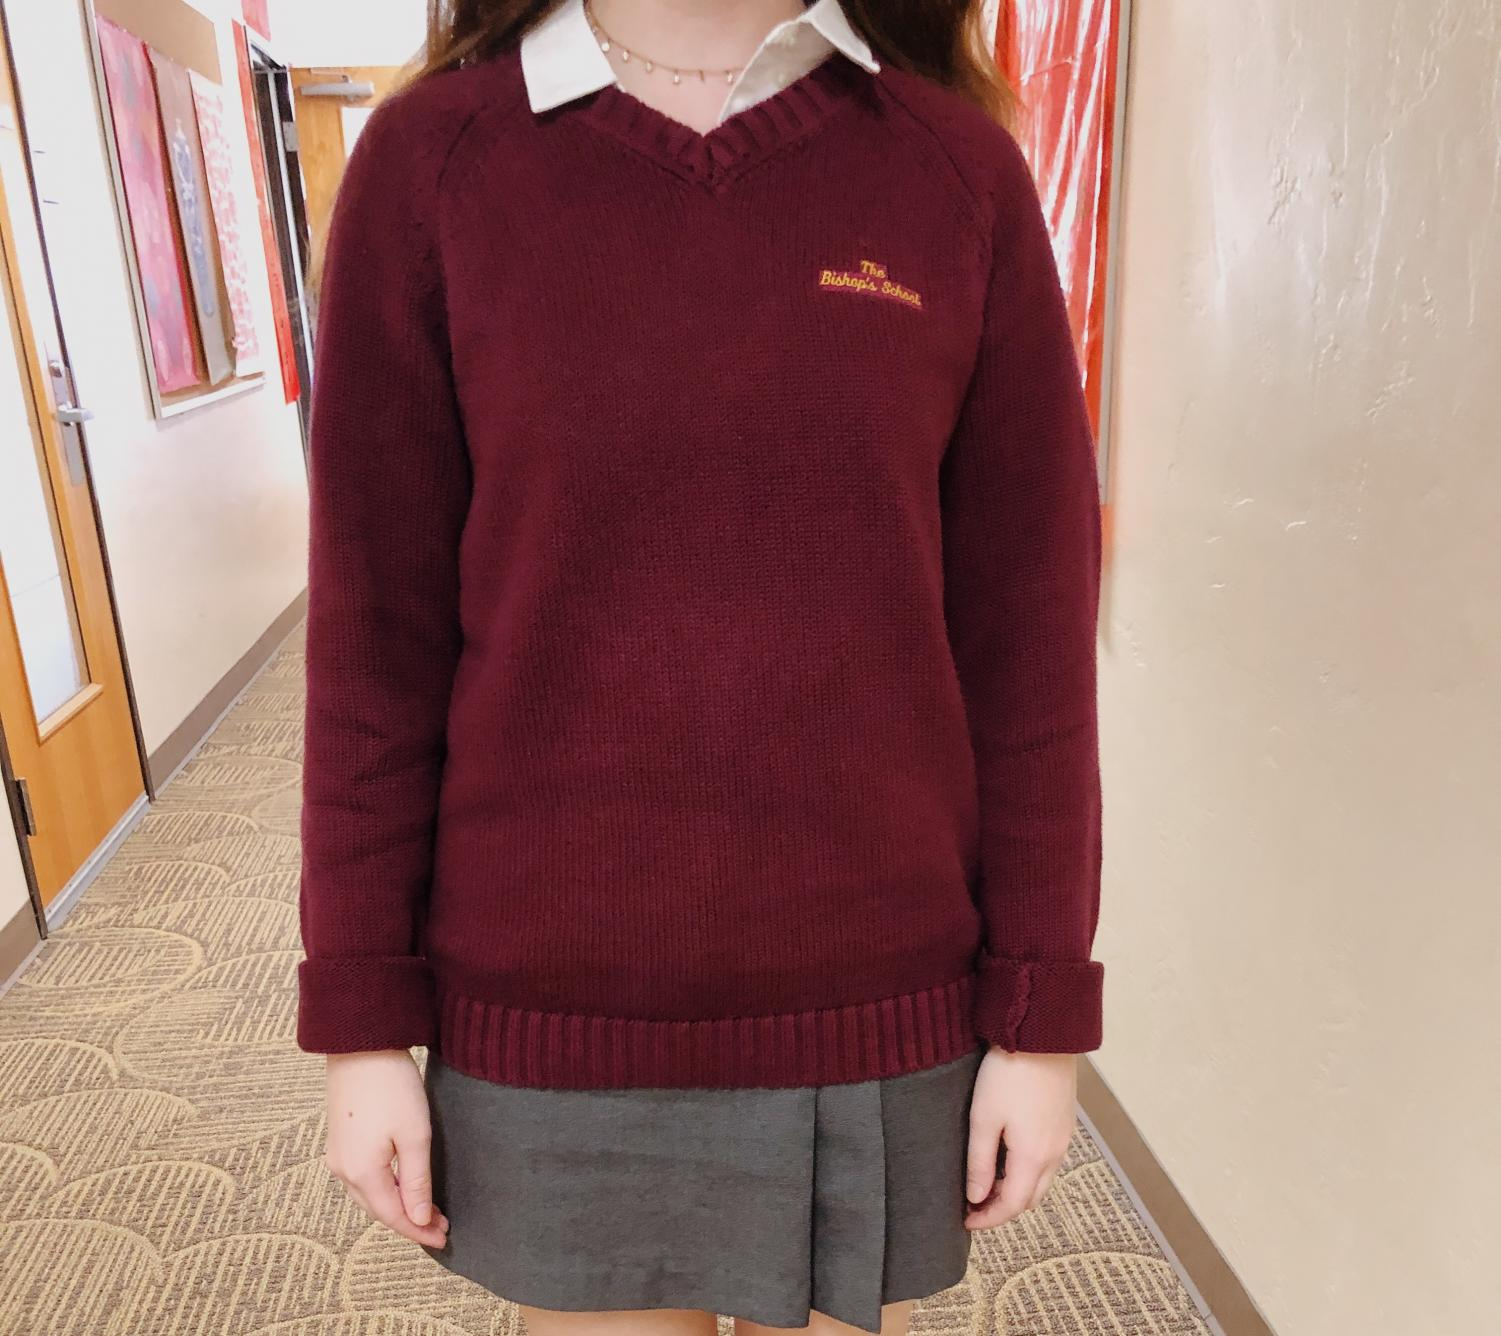 A student wears a maroon sweater on dress day.